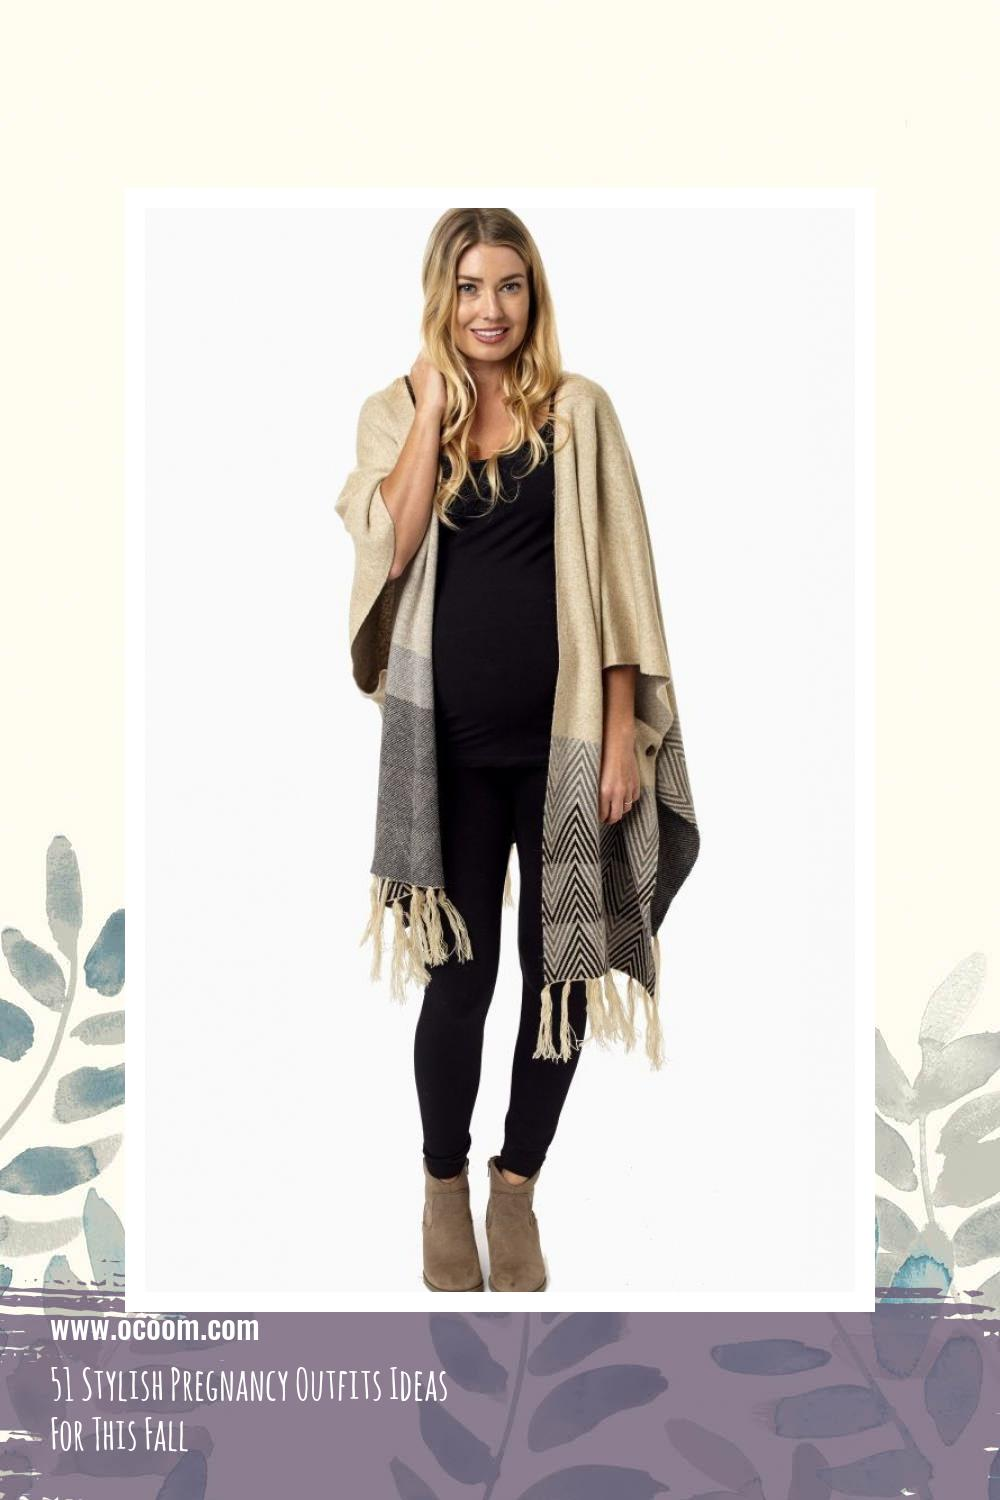 51 Stylish Pregnancy Outfits Ideas For This Fall 9